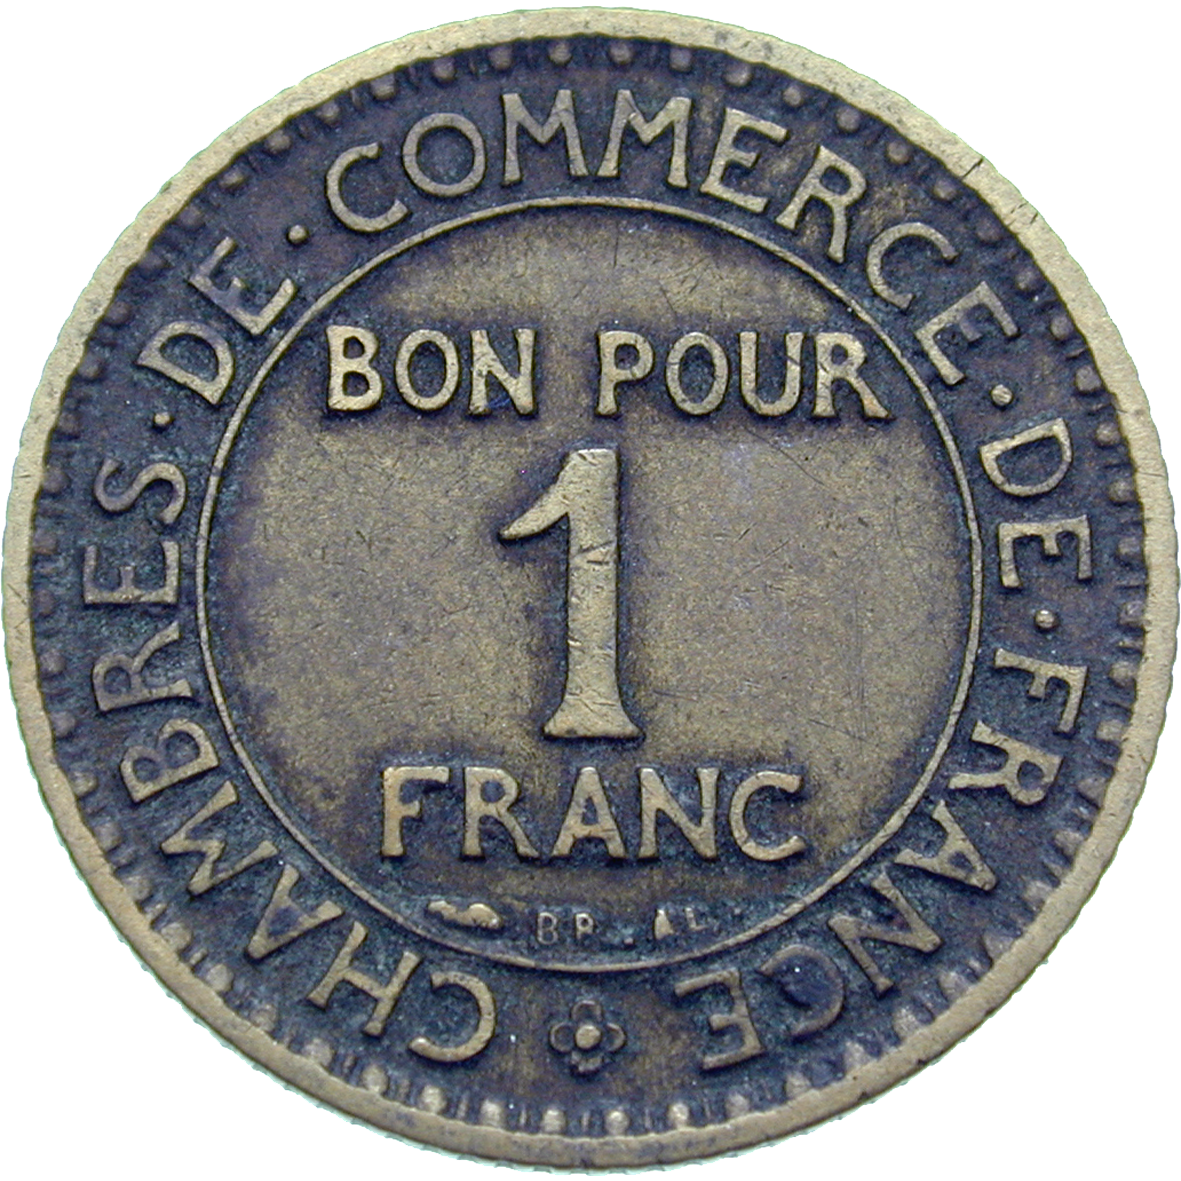 Republic of France, Chambres de Commerce de France, Bon pour 1 Franc 1921 (reverse)